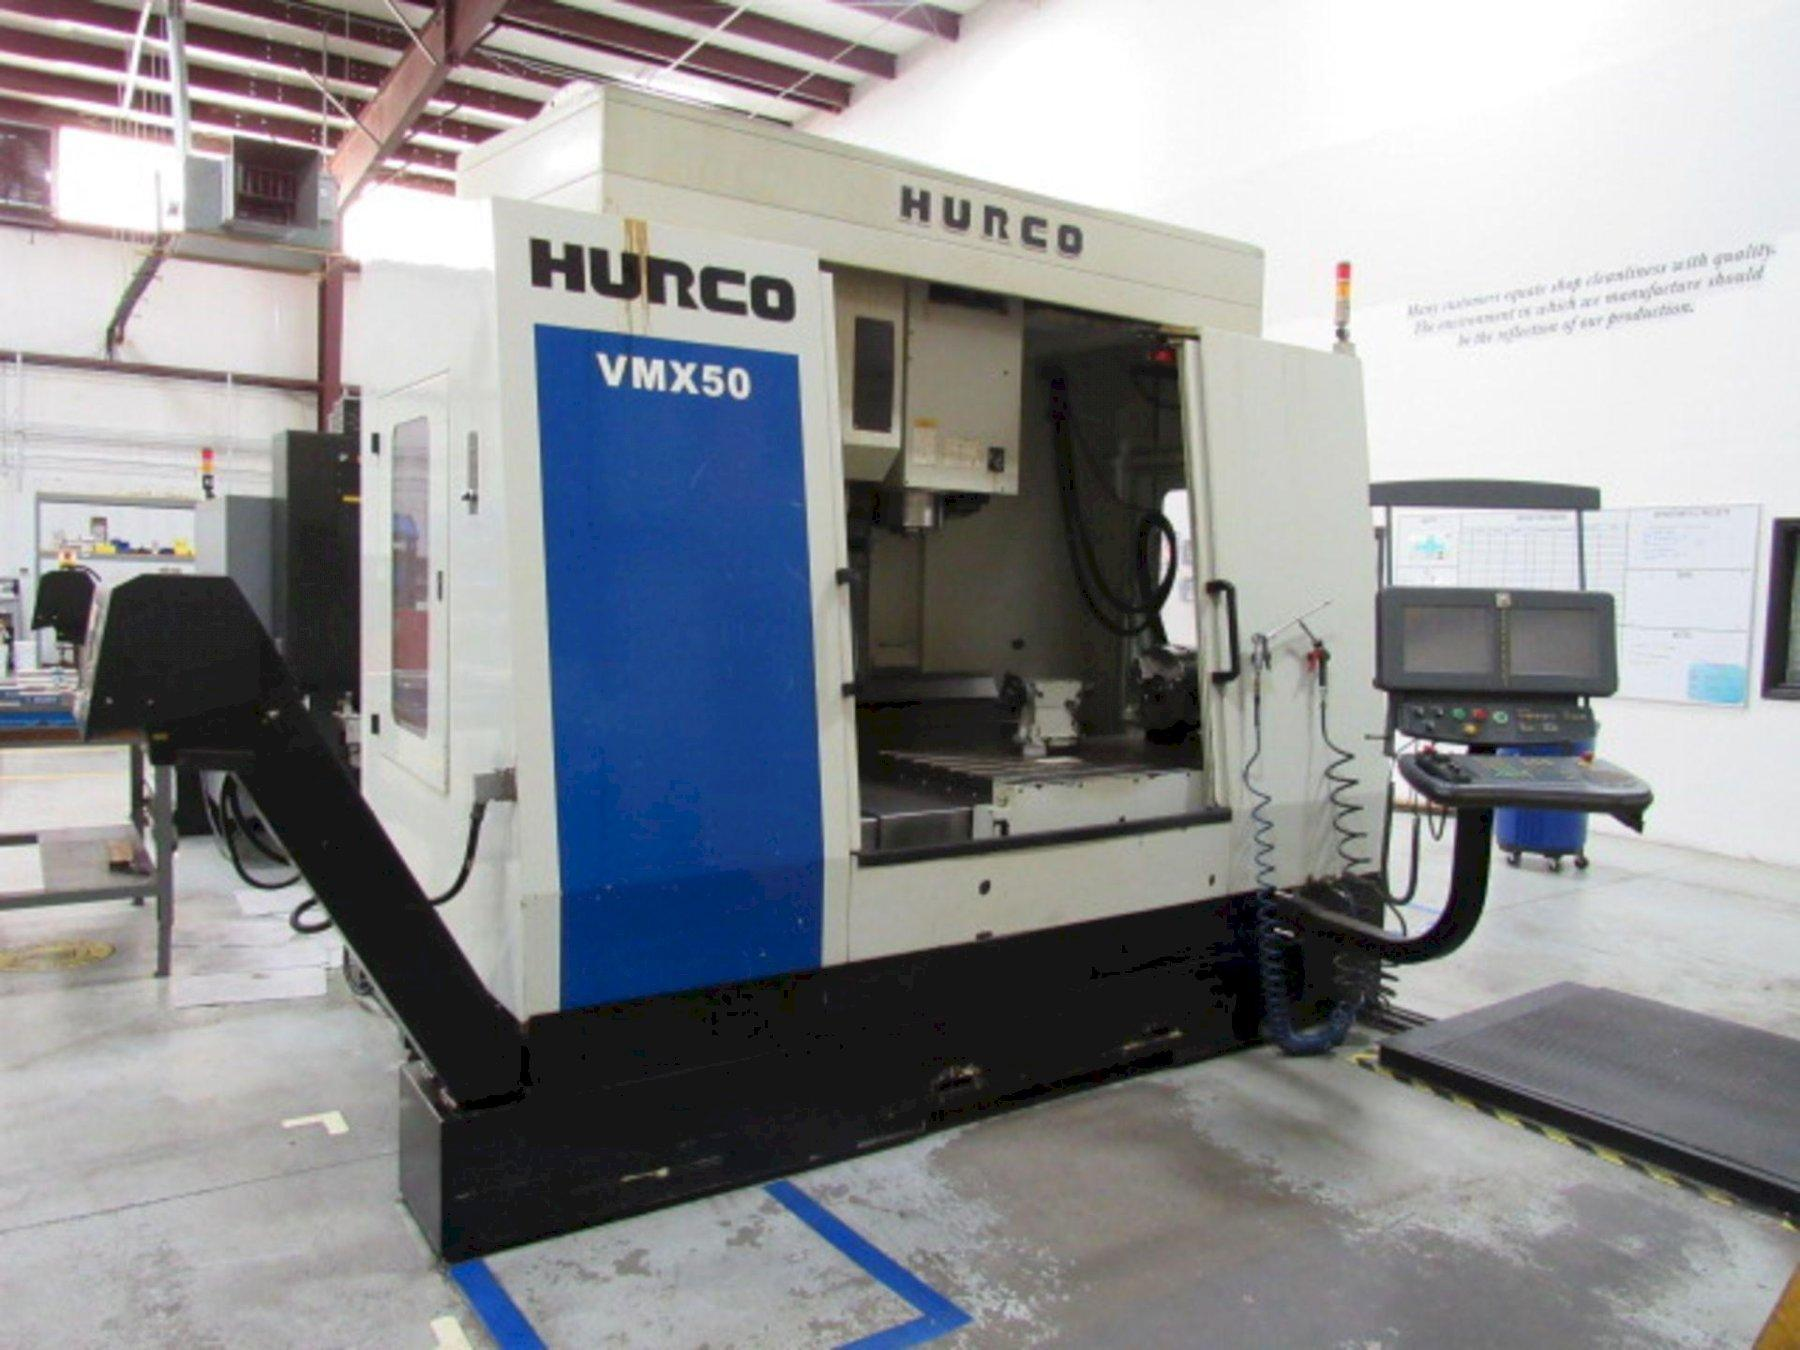 "Hurco VMX50/50 CNC Vertical Machining Center, WinMax Control, 50""/26""/24"" Travels, 50 Taper, 8K, 30 ATC, 12"" Rotary Table w/TS, Many Control Options, Low Hours, 2012"